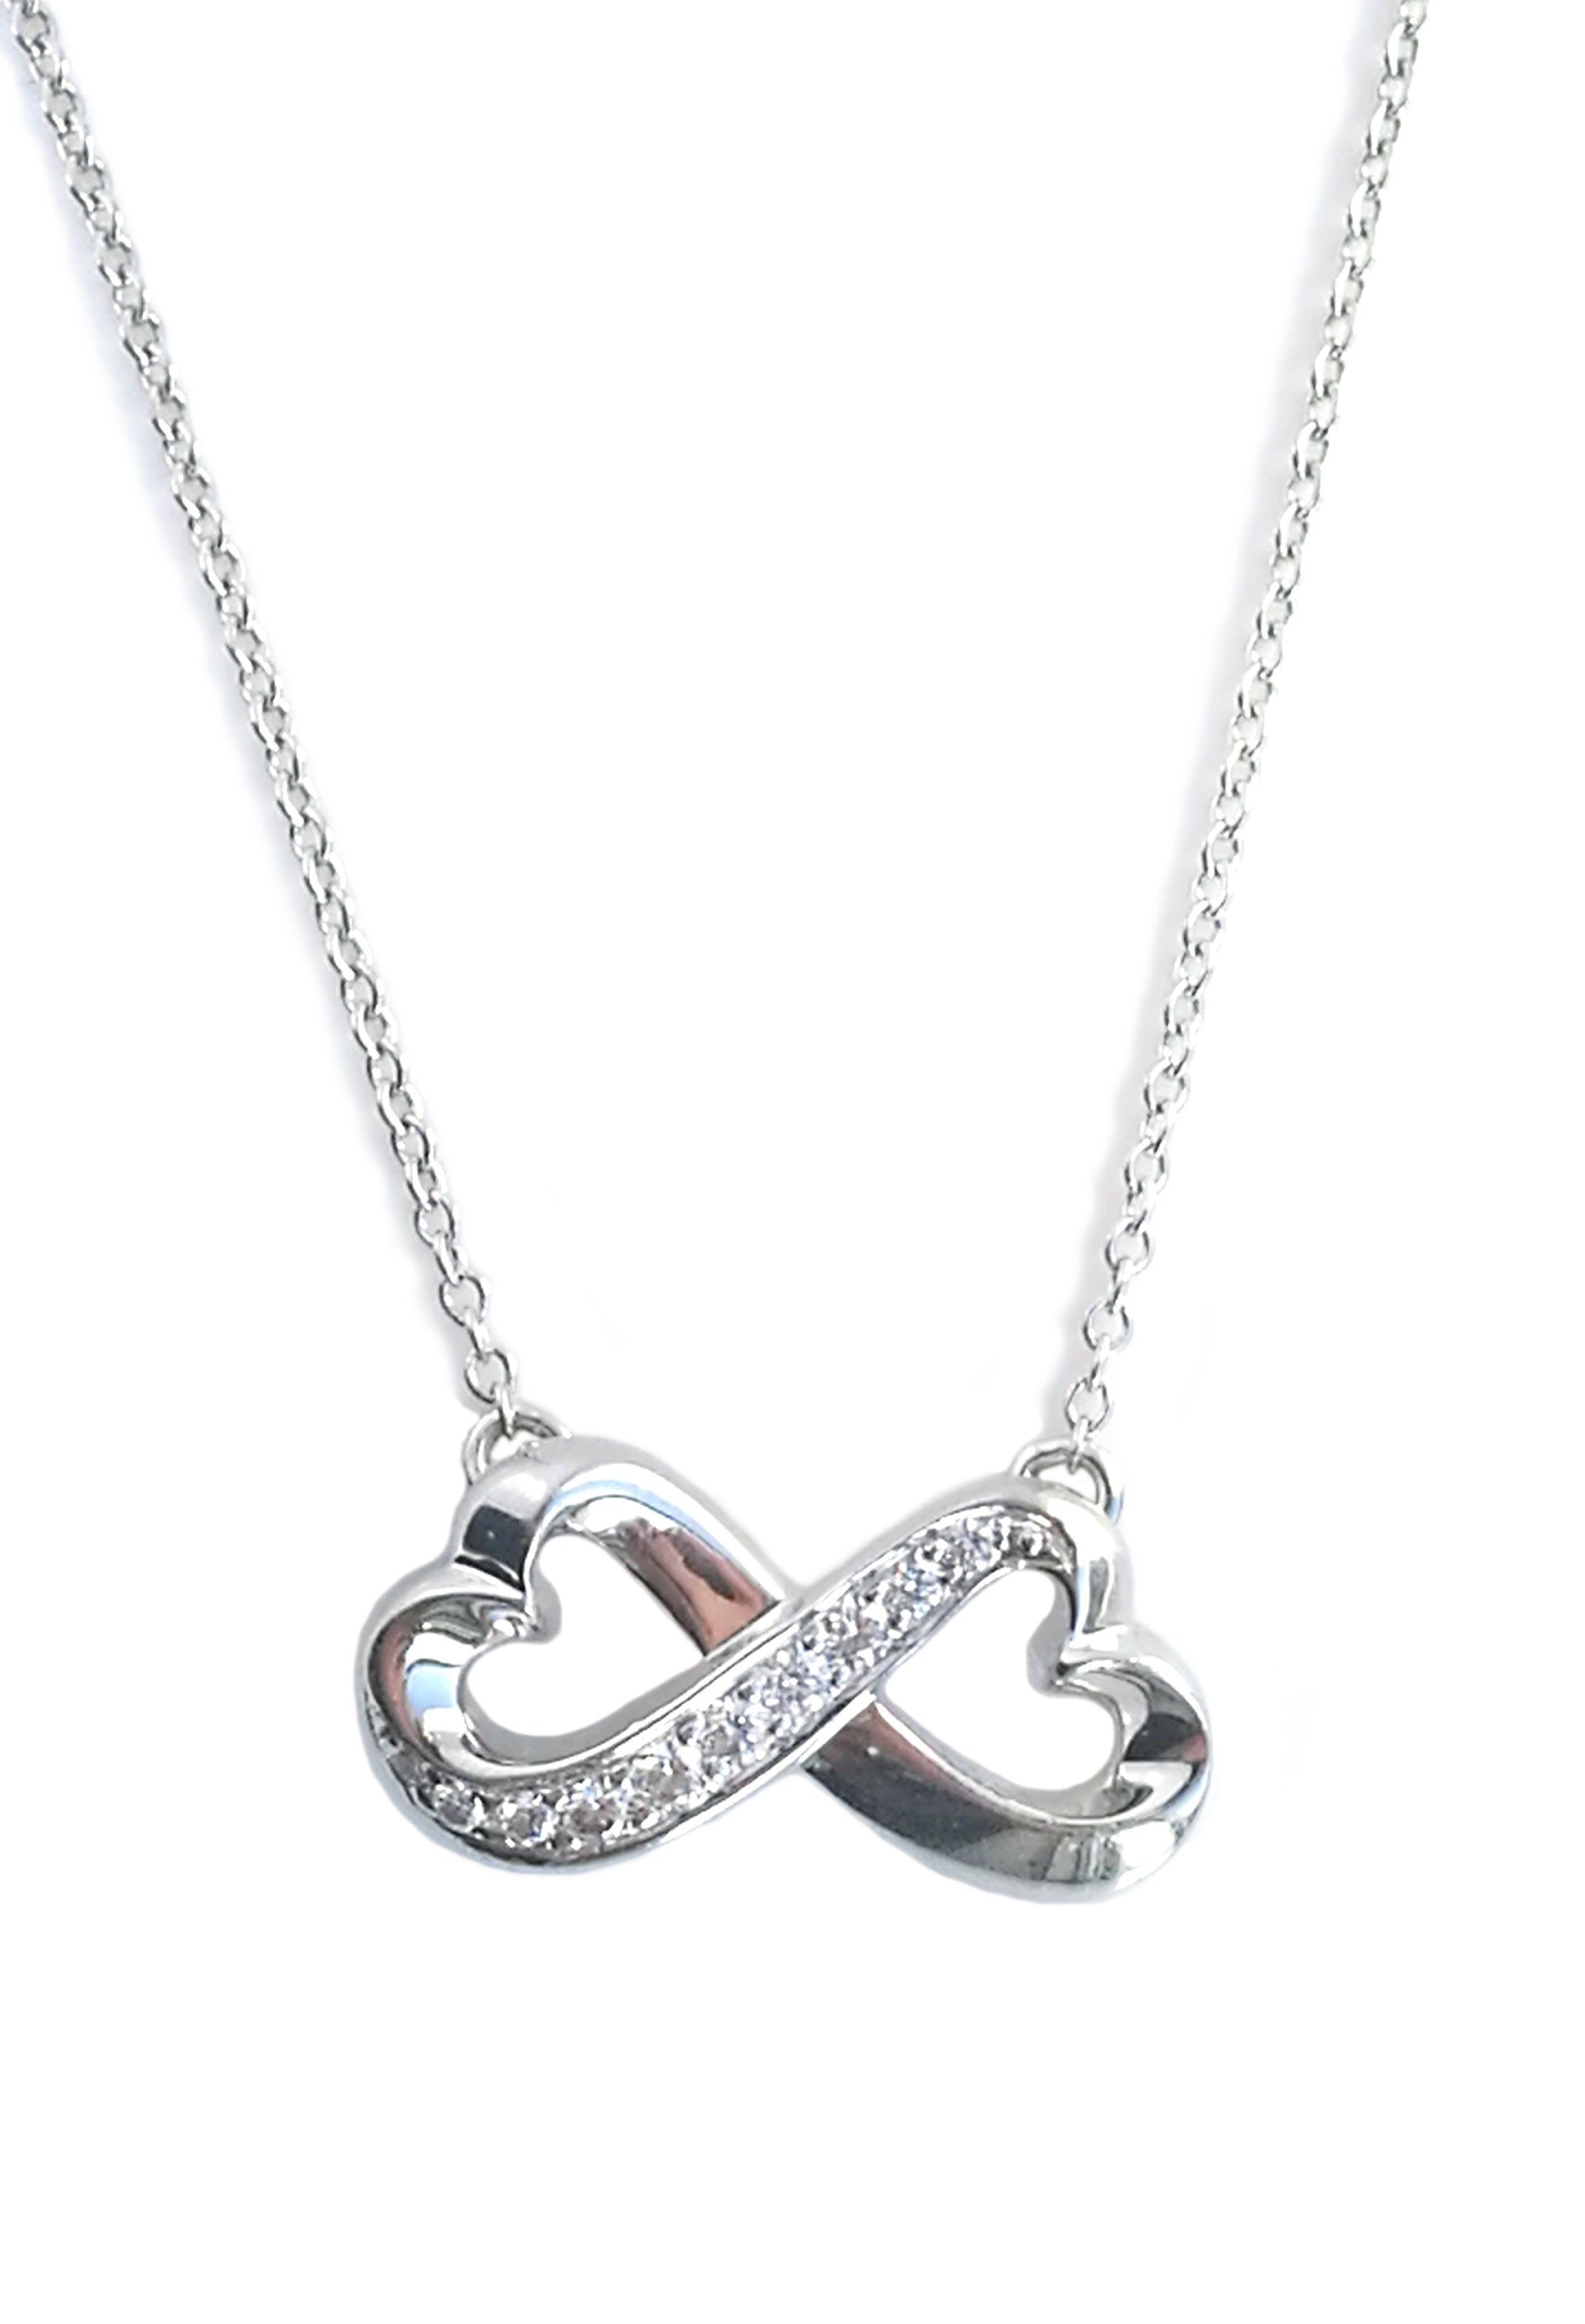 Tiffany & Co Paloma Picasso 18k White Gold Double Diamond Loving Hearts Necklace